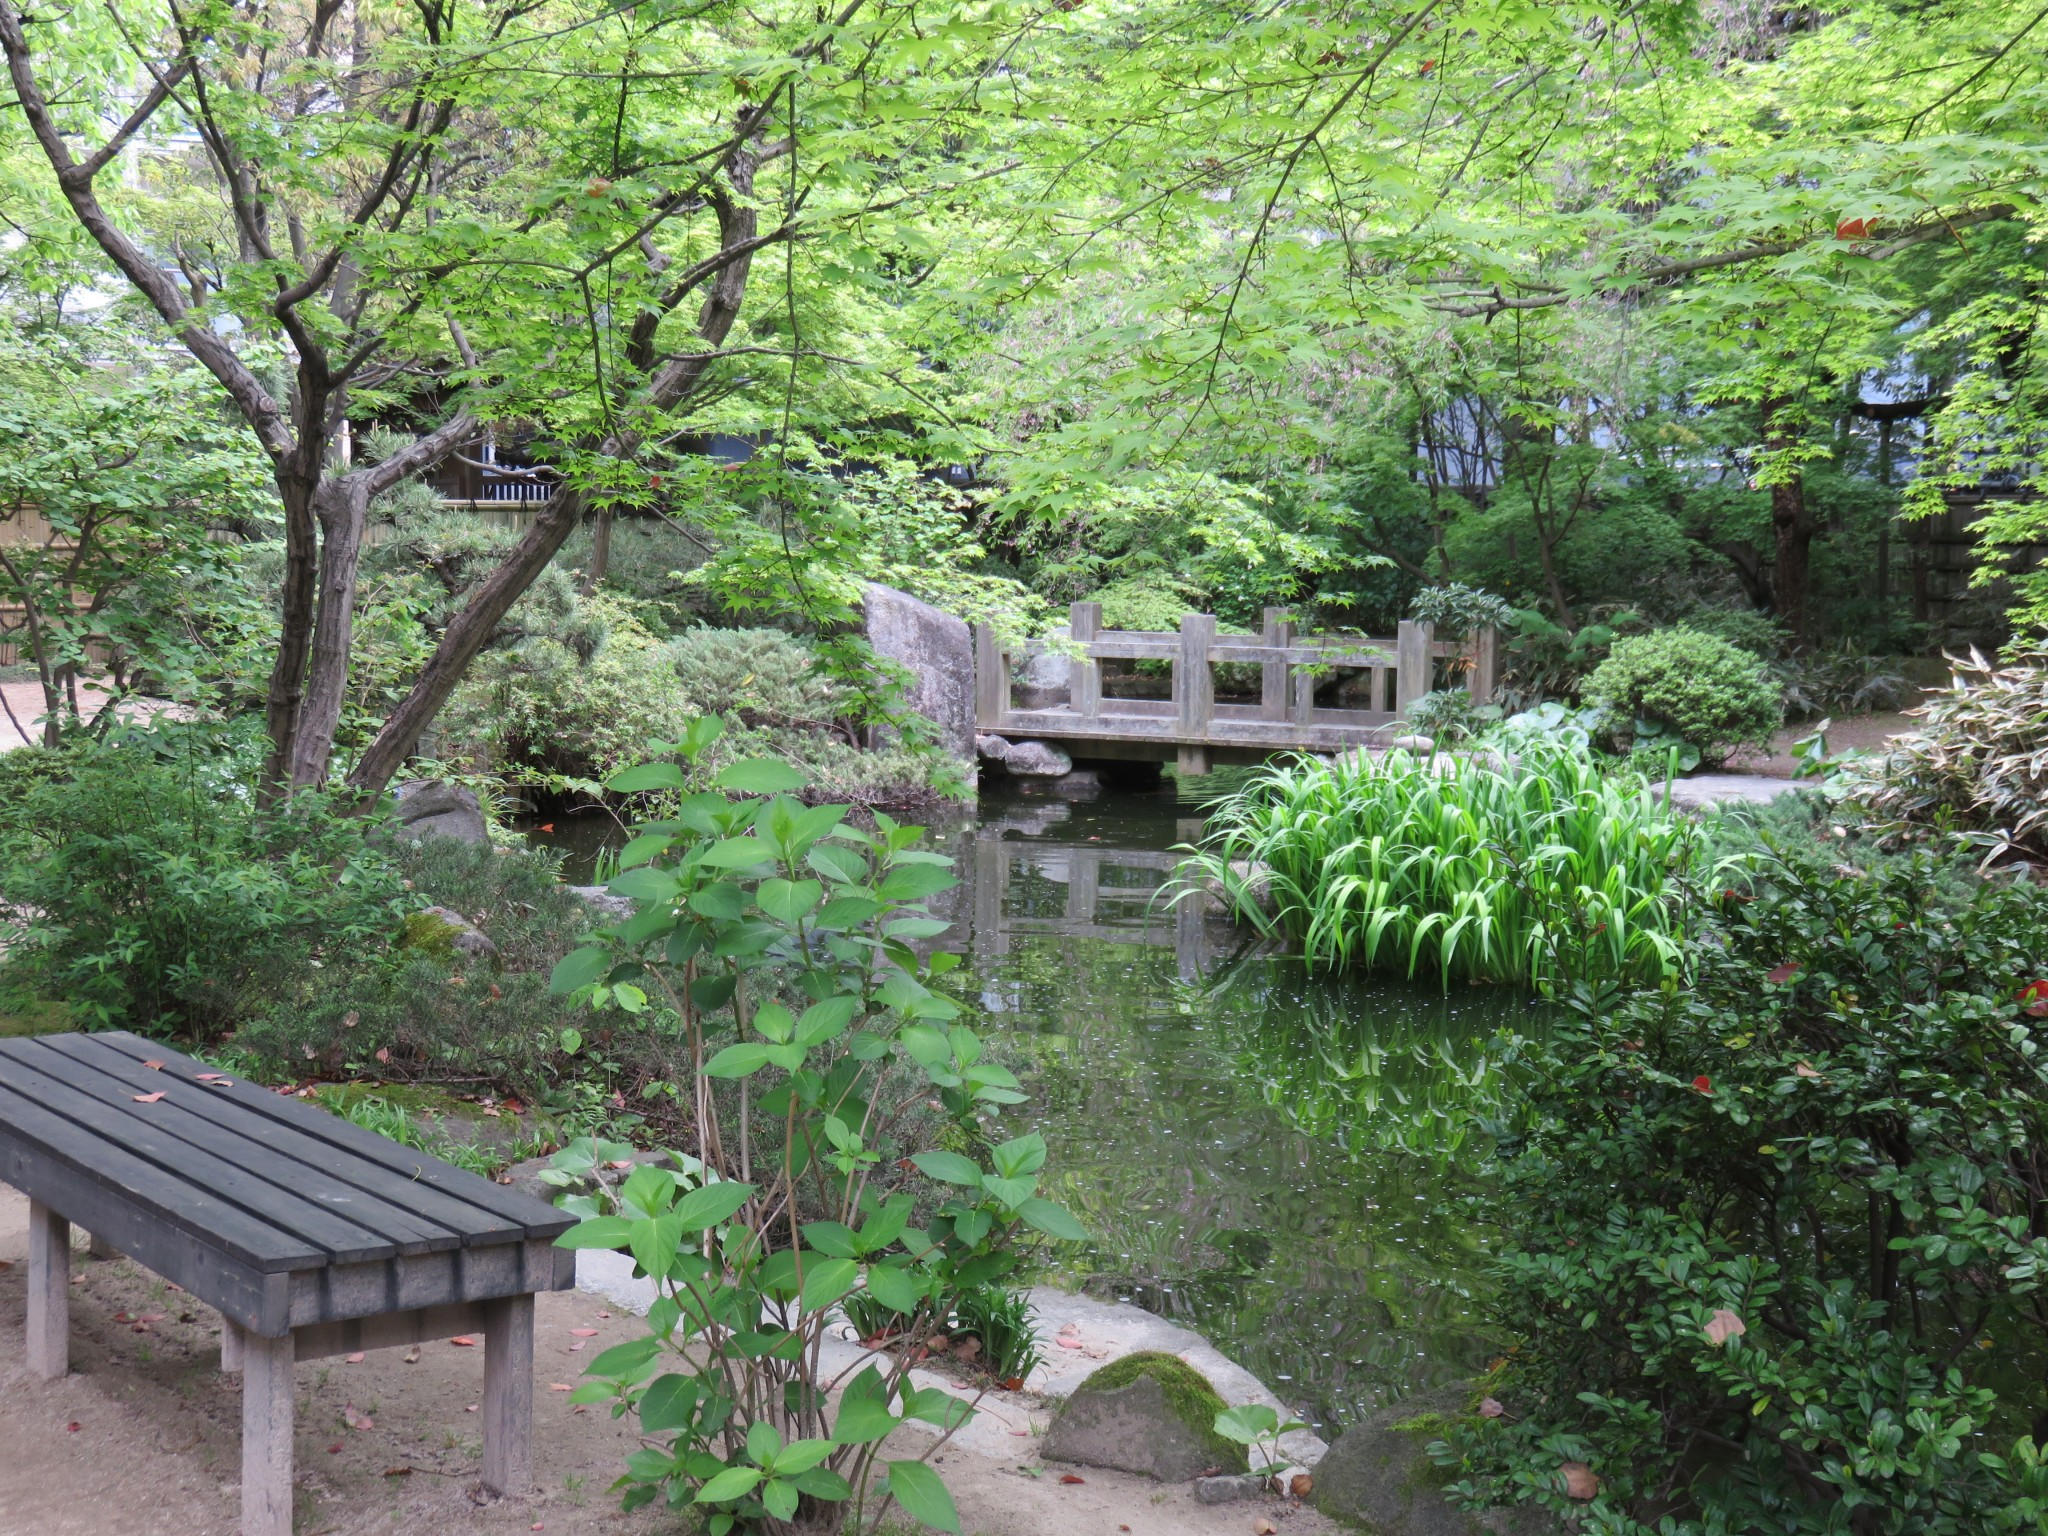 Relax in a traditional Japanese garden at Rakusuien!